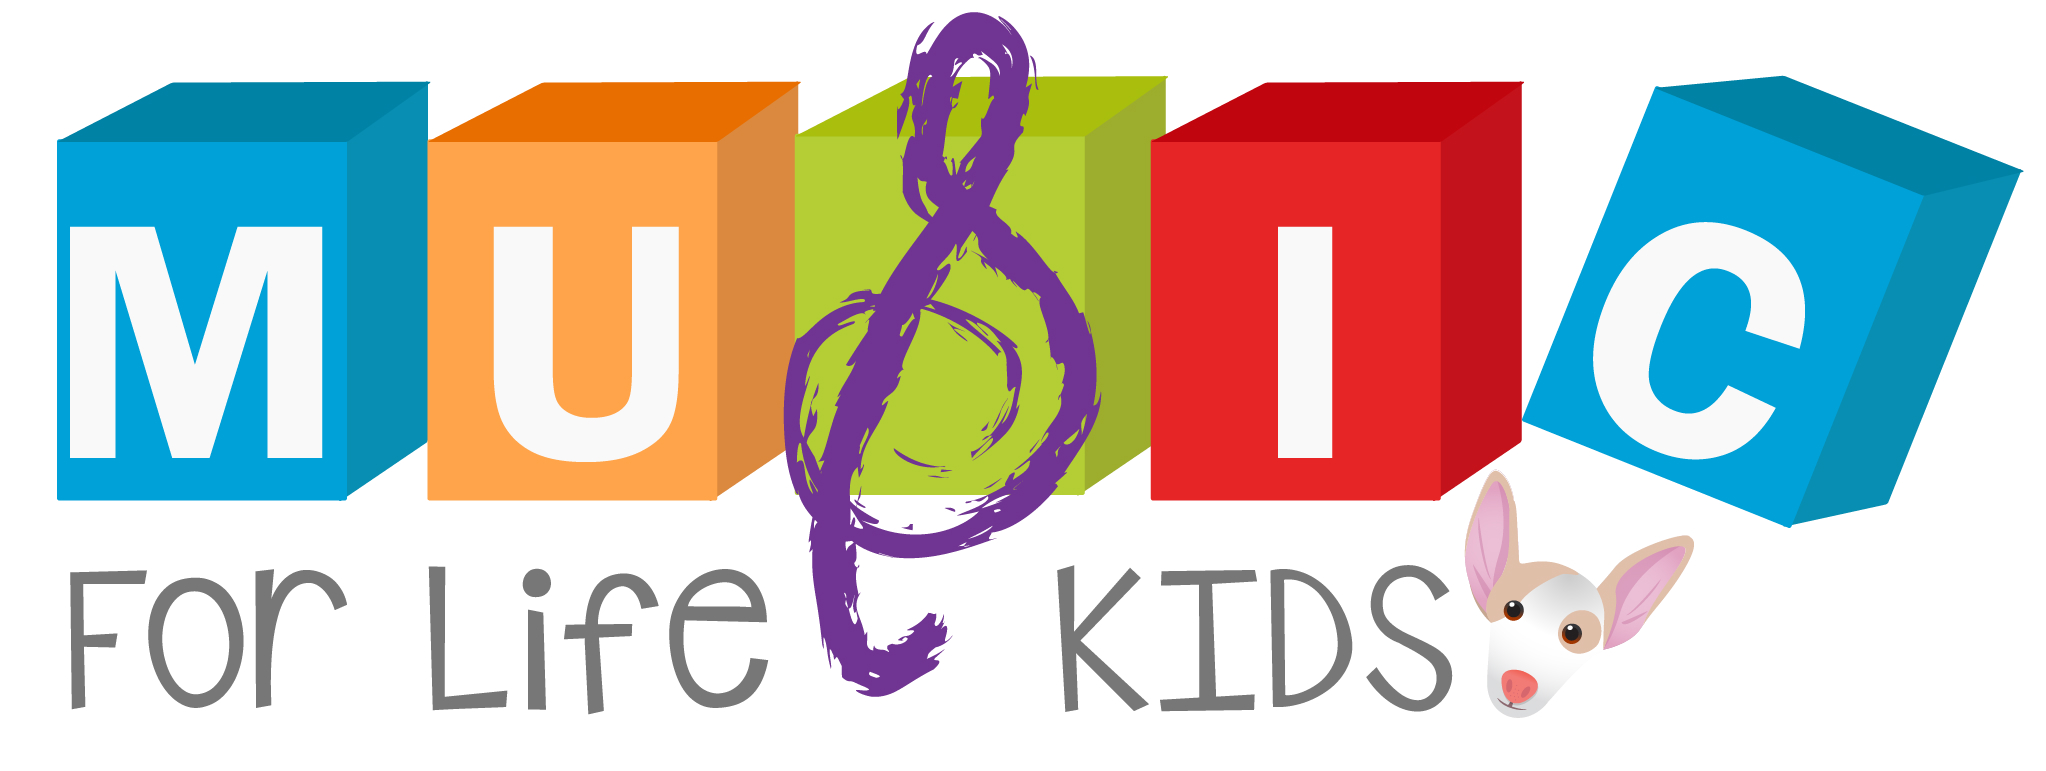 Science Behind Music for Kids | Music For Life Kids